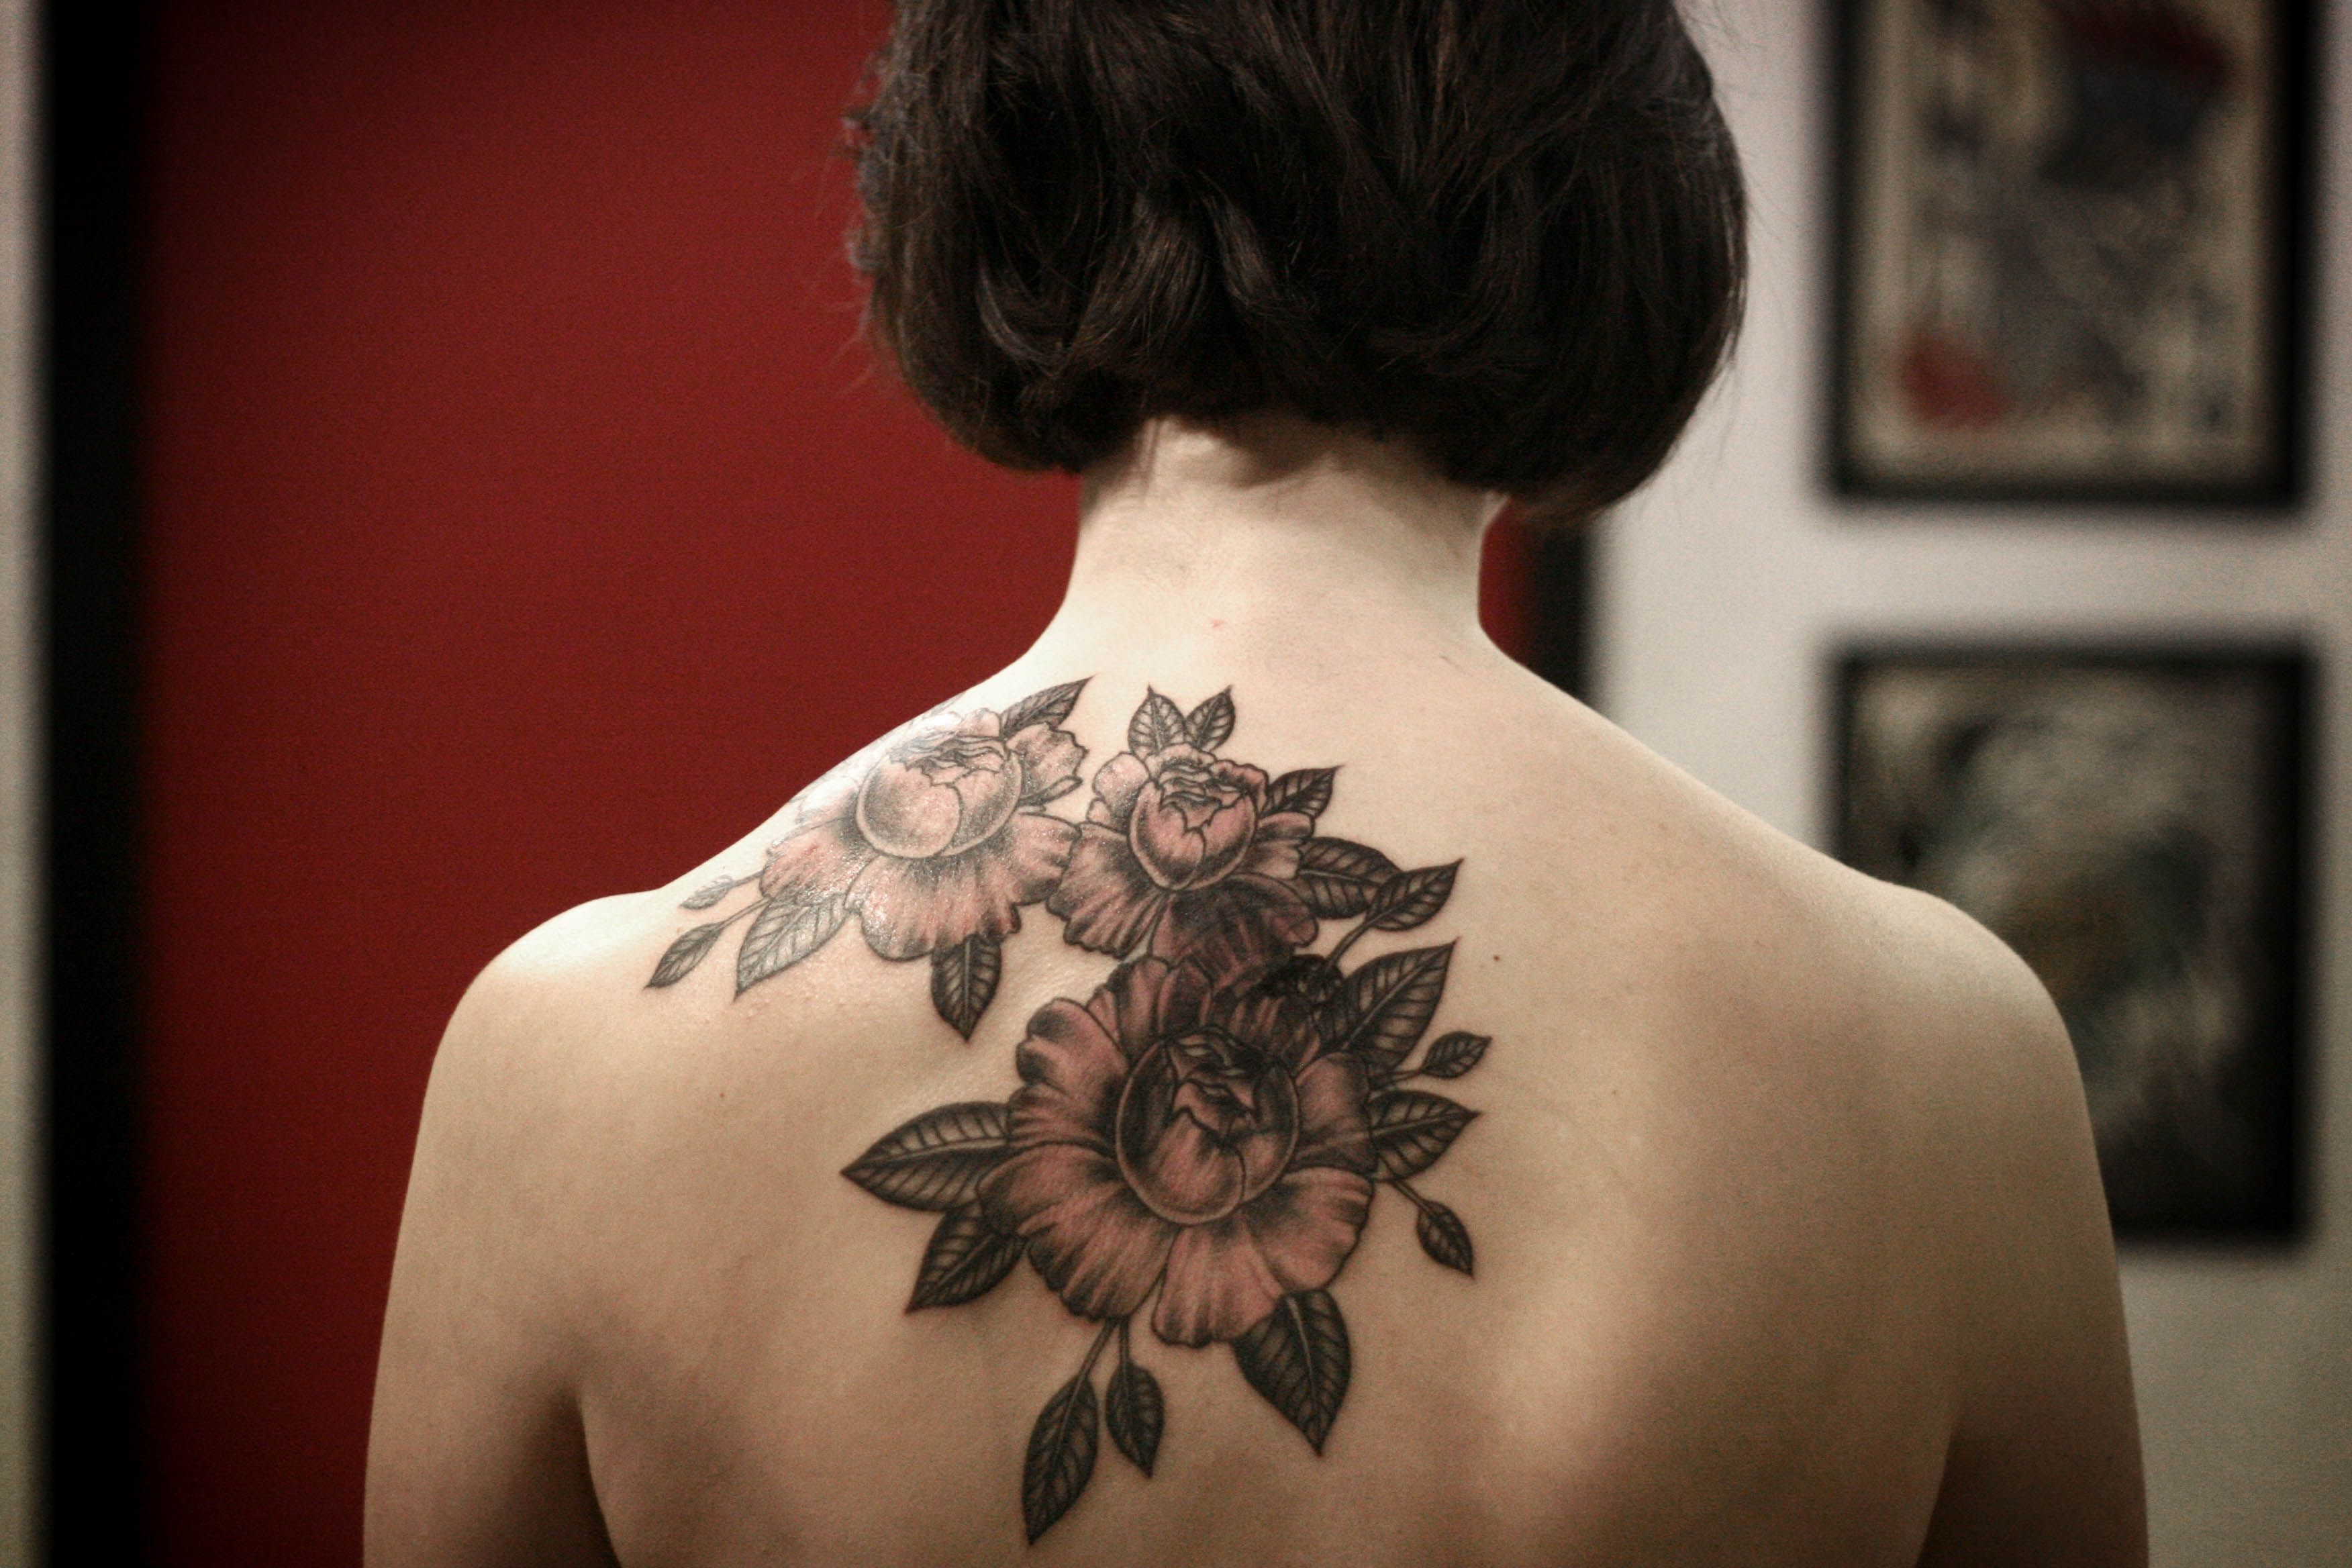 Alice Carrier Is A Tattoo Artist At Wonderland Tattoo In: Floral Cover Up By Alice Carrier At Anatomy Tattoo In